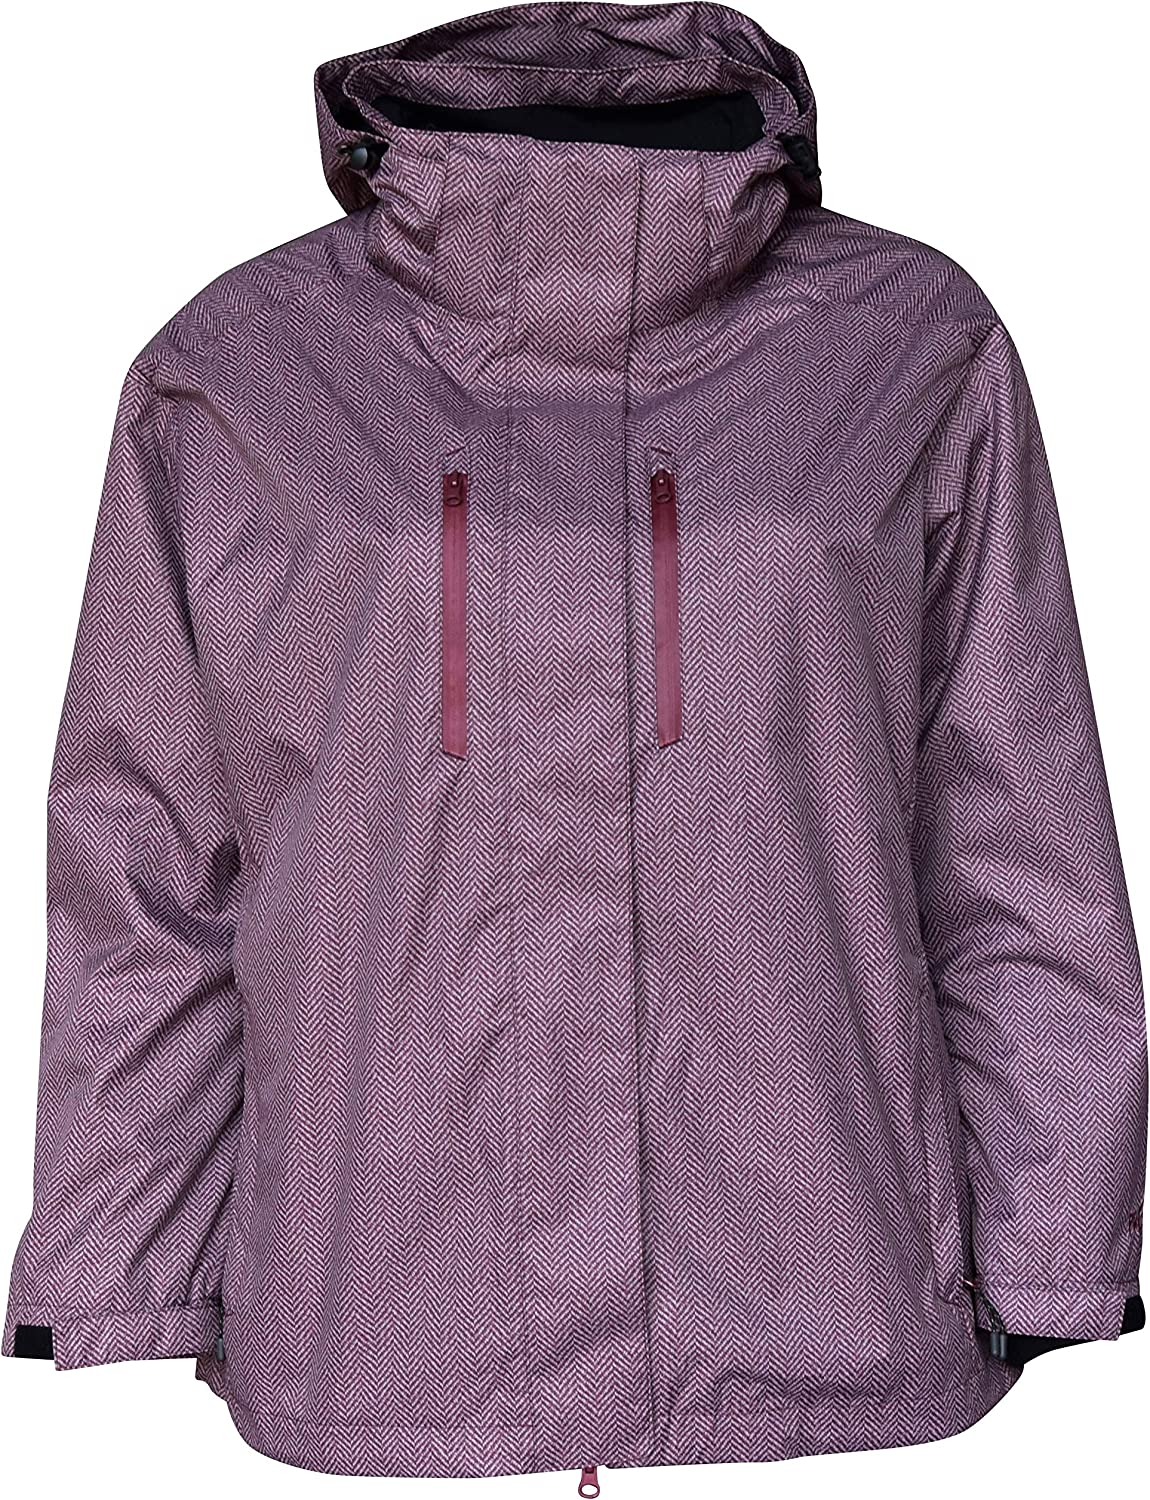 PULSE Womens Plus Extended Size 3in1 Boundary Snow Ski Jacket Coat